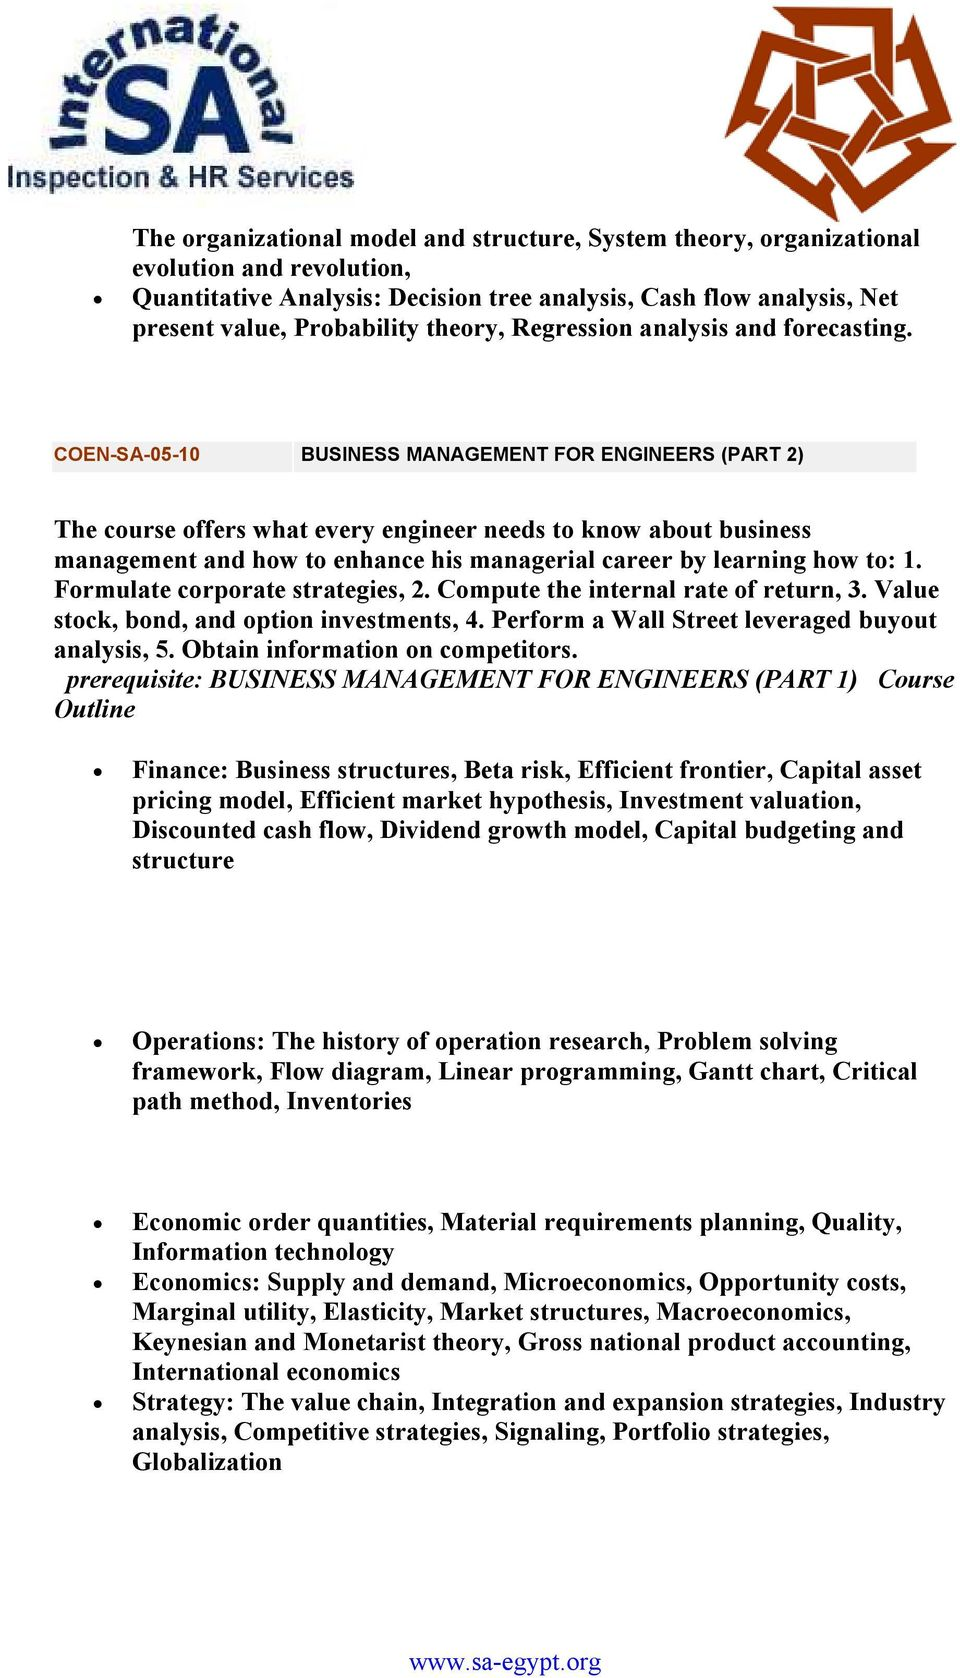 COEN-SA-05-10 BUSINESS MANAGEMENT FOR ENGINEERS (PART 2) The course offers what every engineer needs to know about business management and how to enhance his managerial career by learning how to: 1.